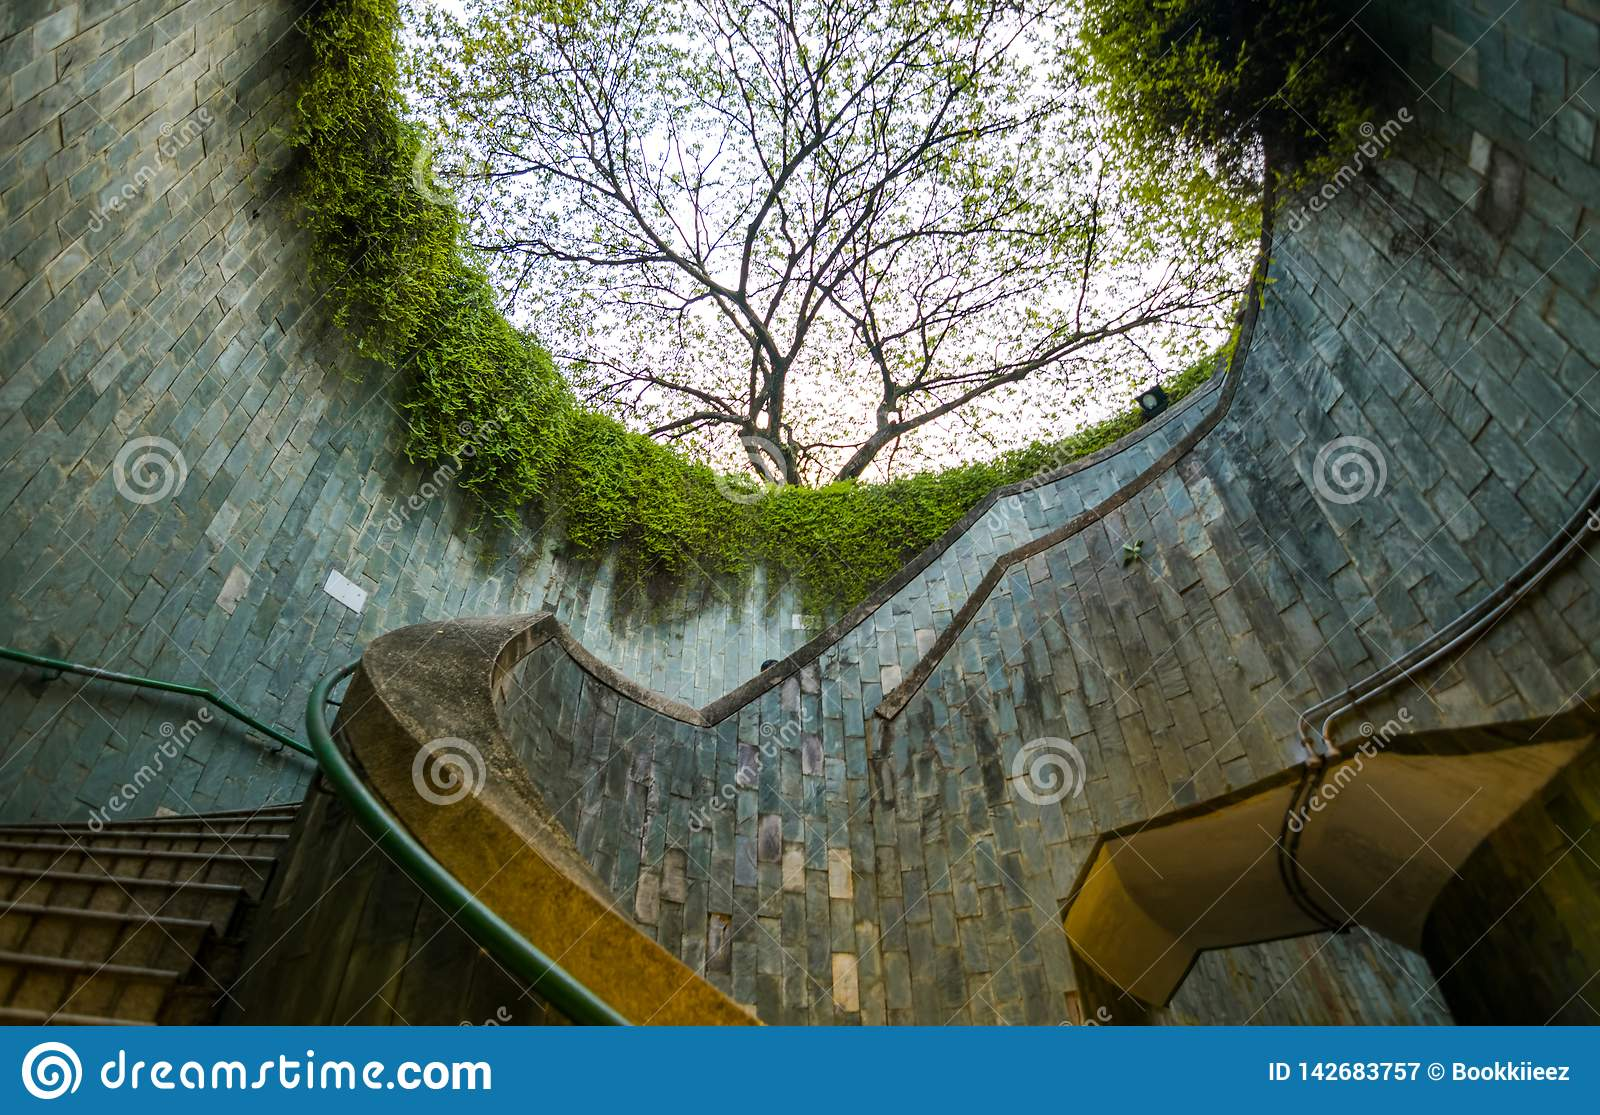 Spiral staircase of underground at Fort Canning Park, Singapore.